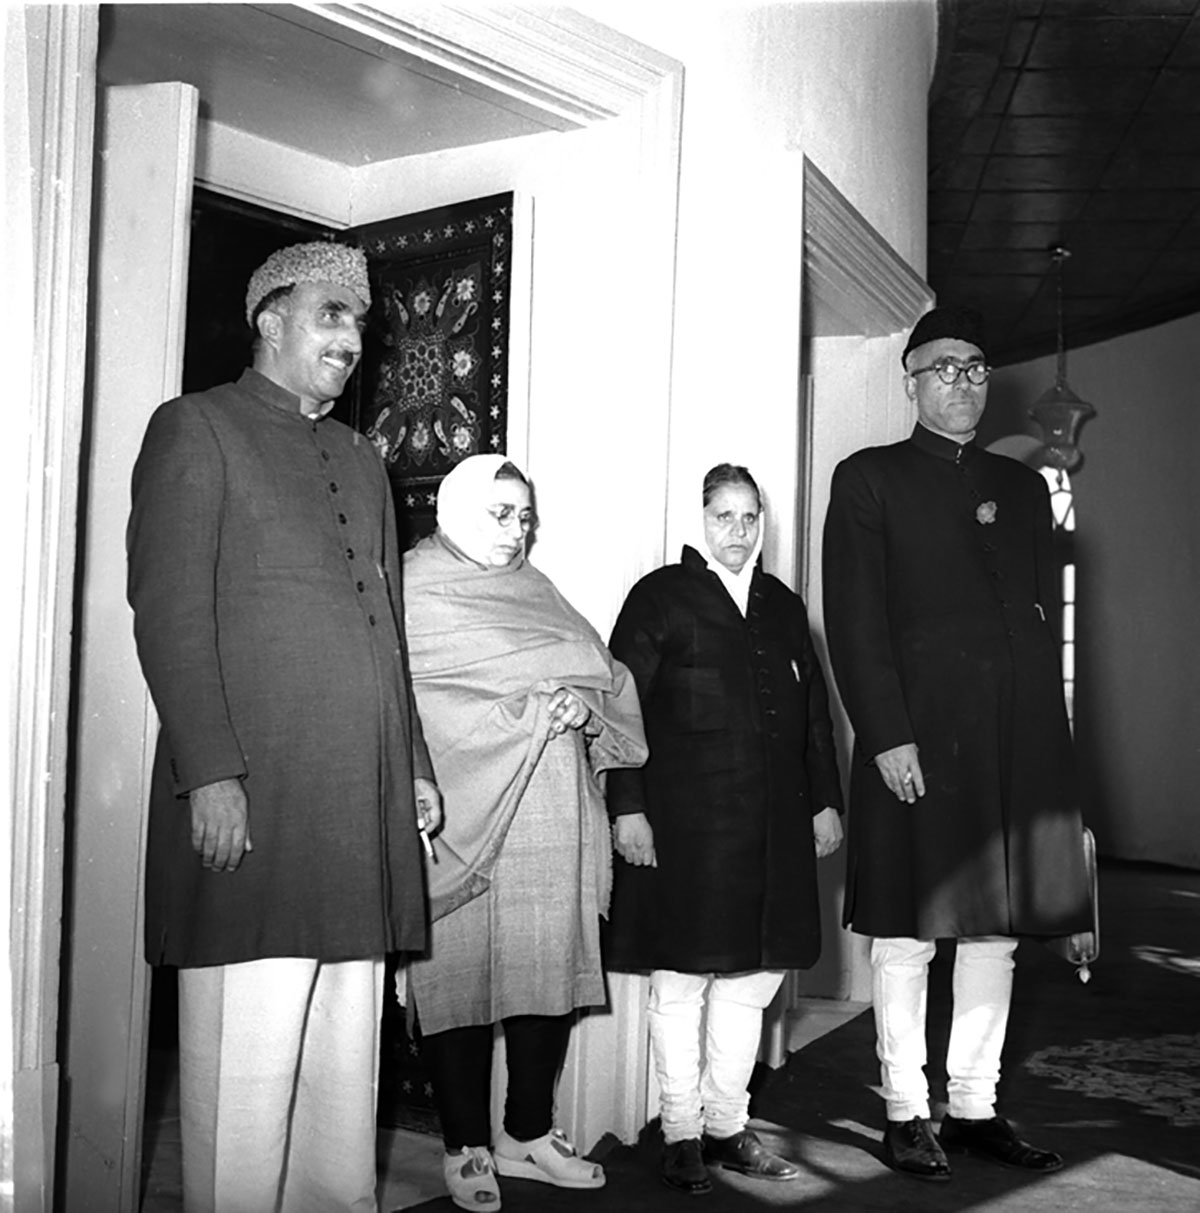 Sheikh Abdullah and Bakshi Ghulam Mohammed with Iswari Devi Maini and Rajender Singh, women-members of the Kashmir Constituent Assembly on October 31, 1951.